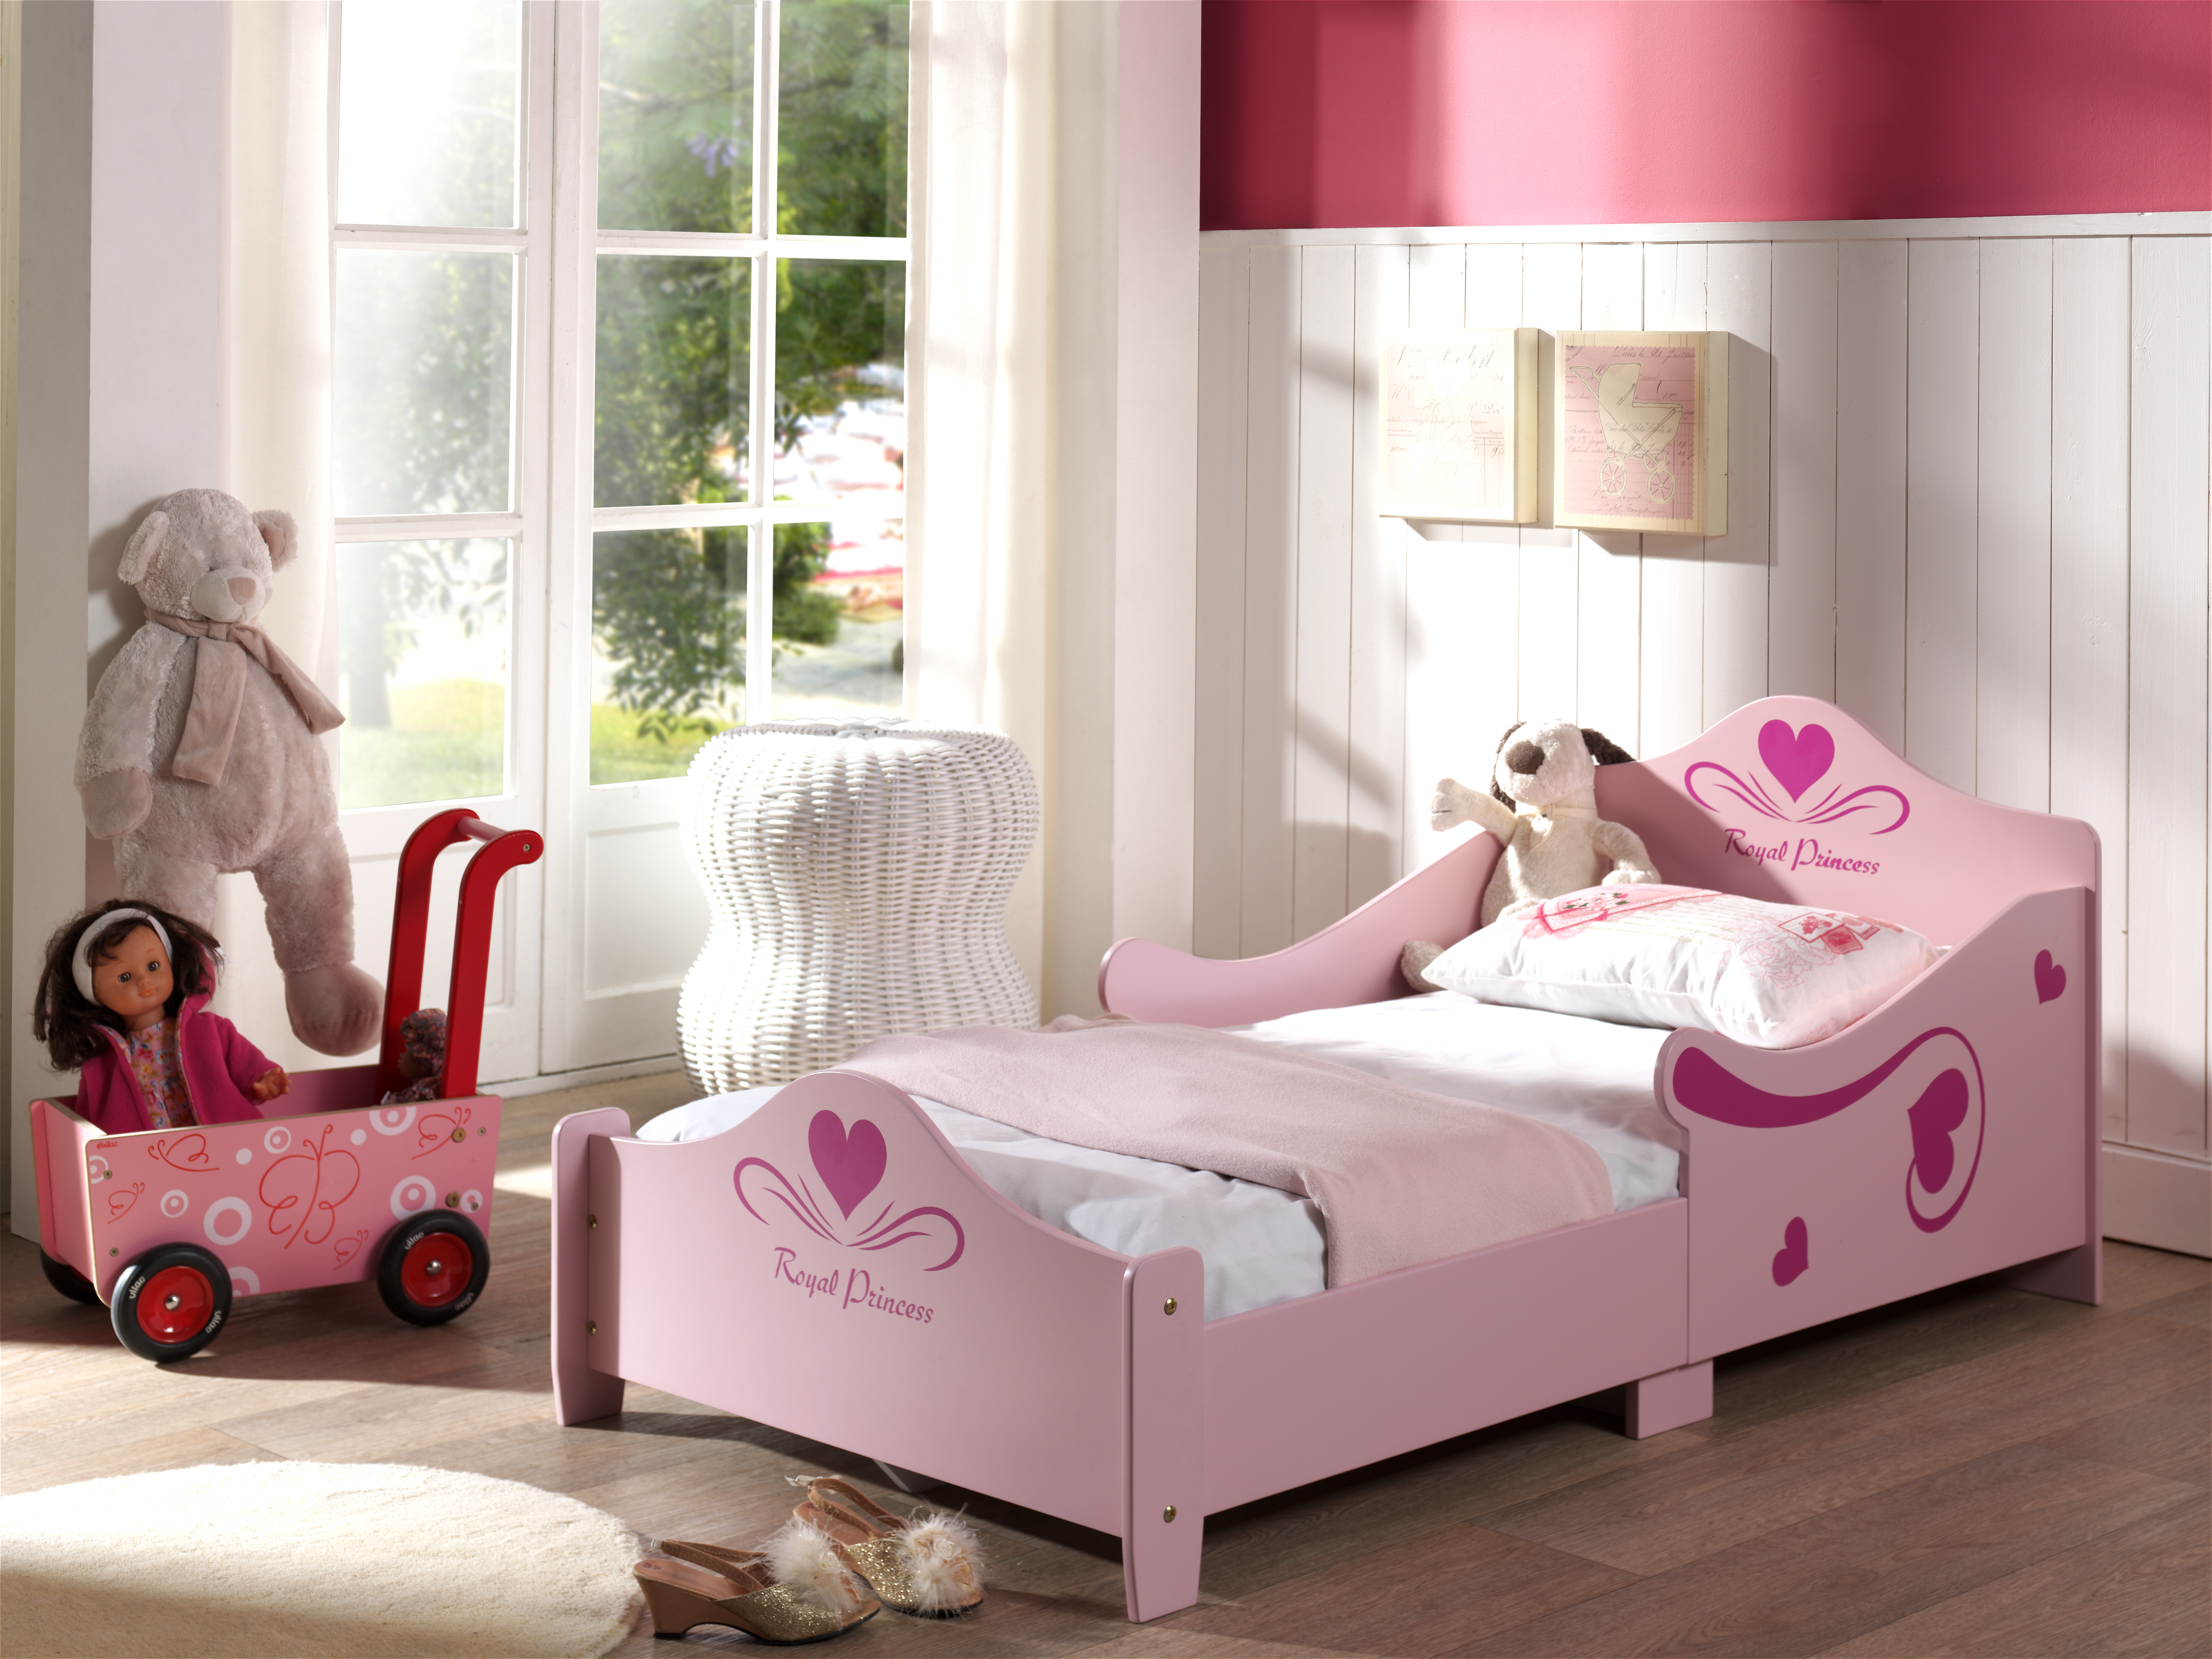 lit junior princesse. Black Bedroom Furniture Sets. Home Design Ideas